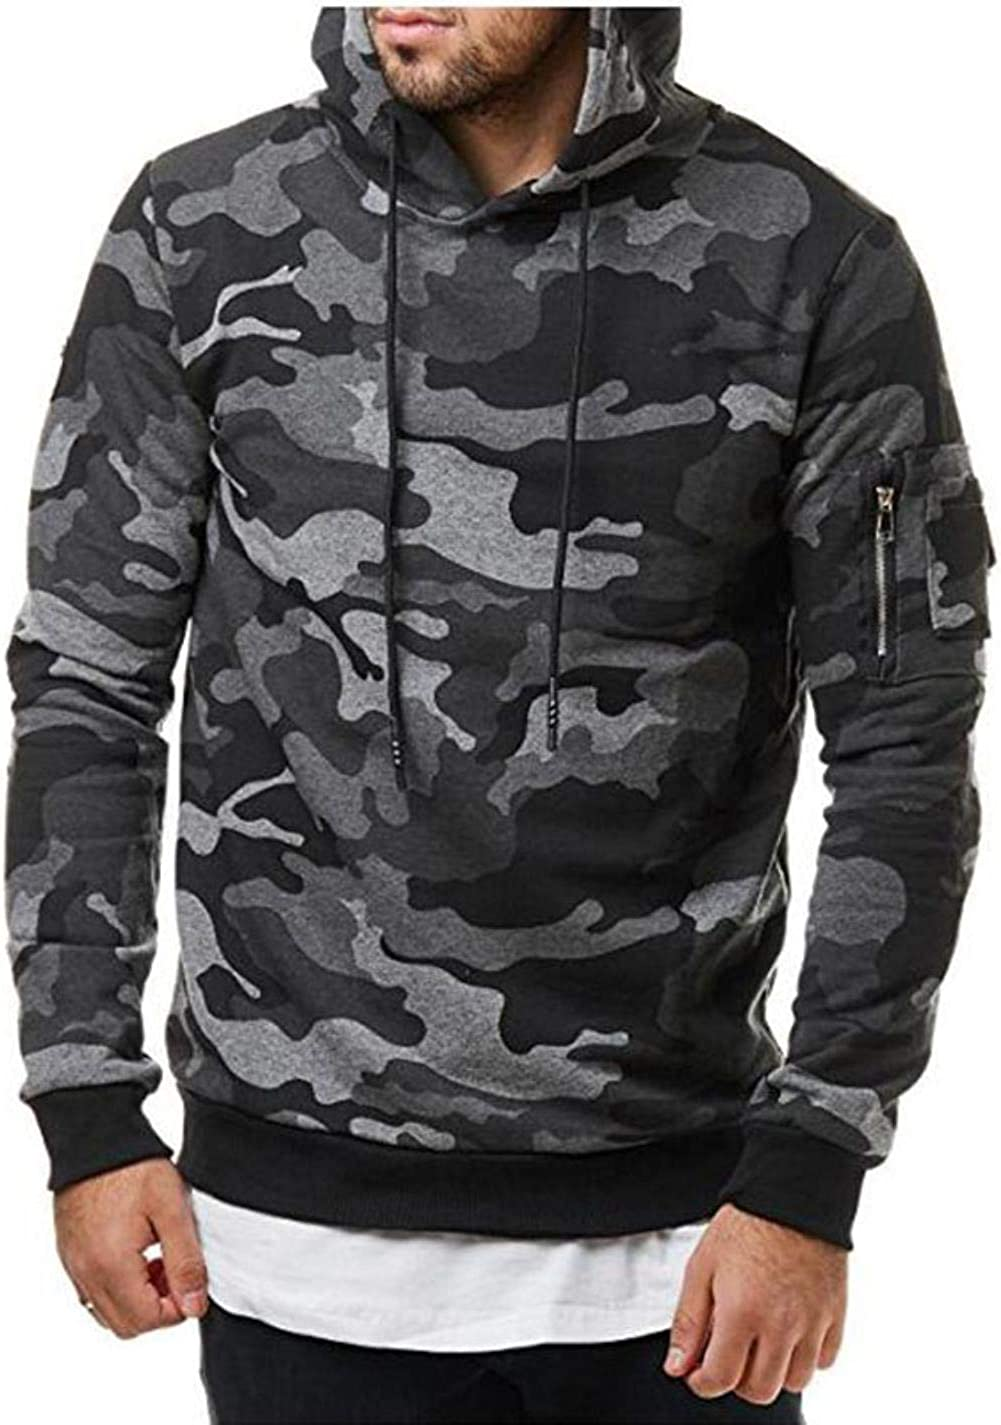 Zcaosma Men Hoodies Sweatshirt Fashion Camouflage Military Tracksuit Casual Pullover Male Hooded